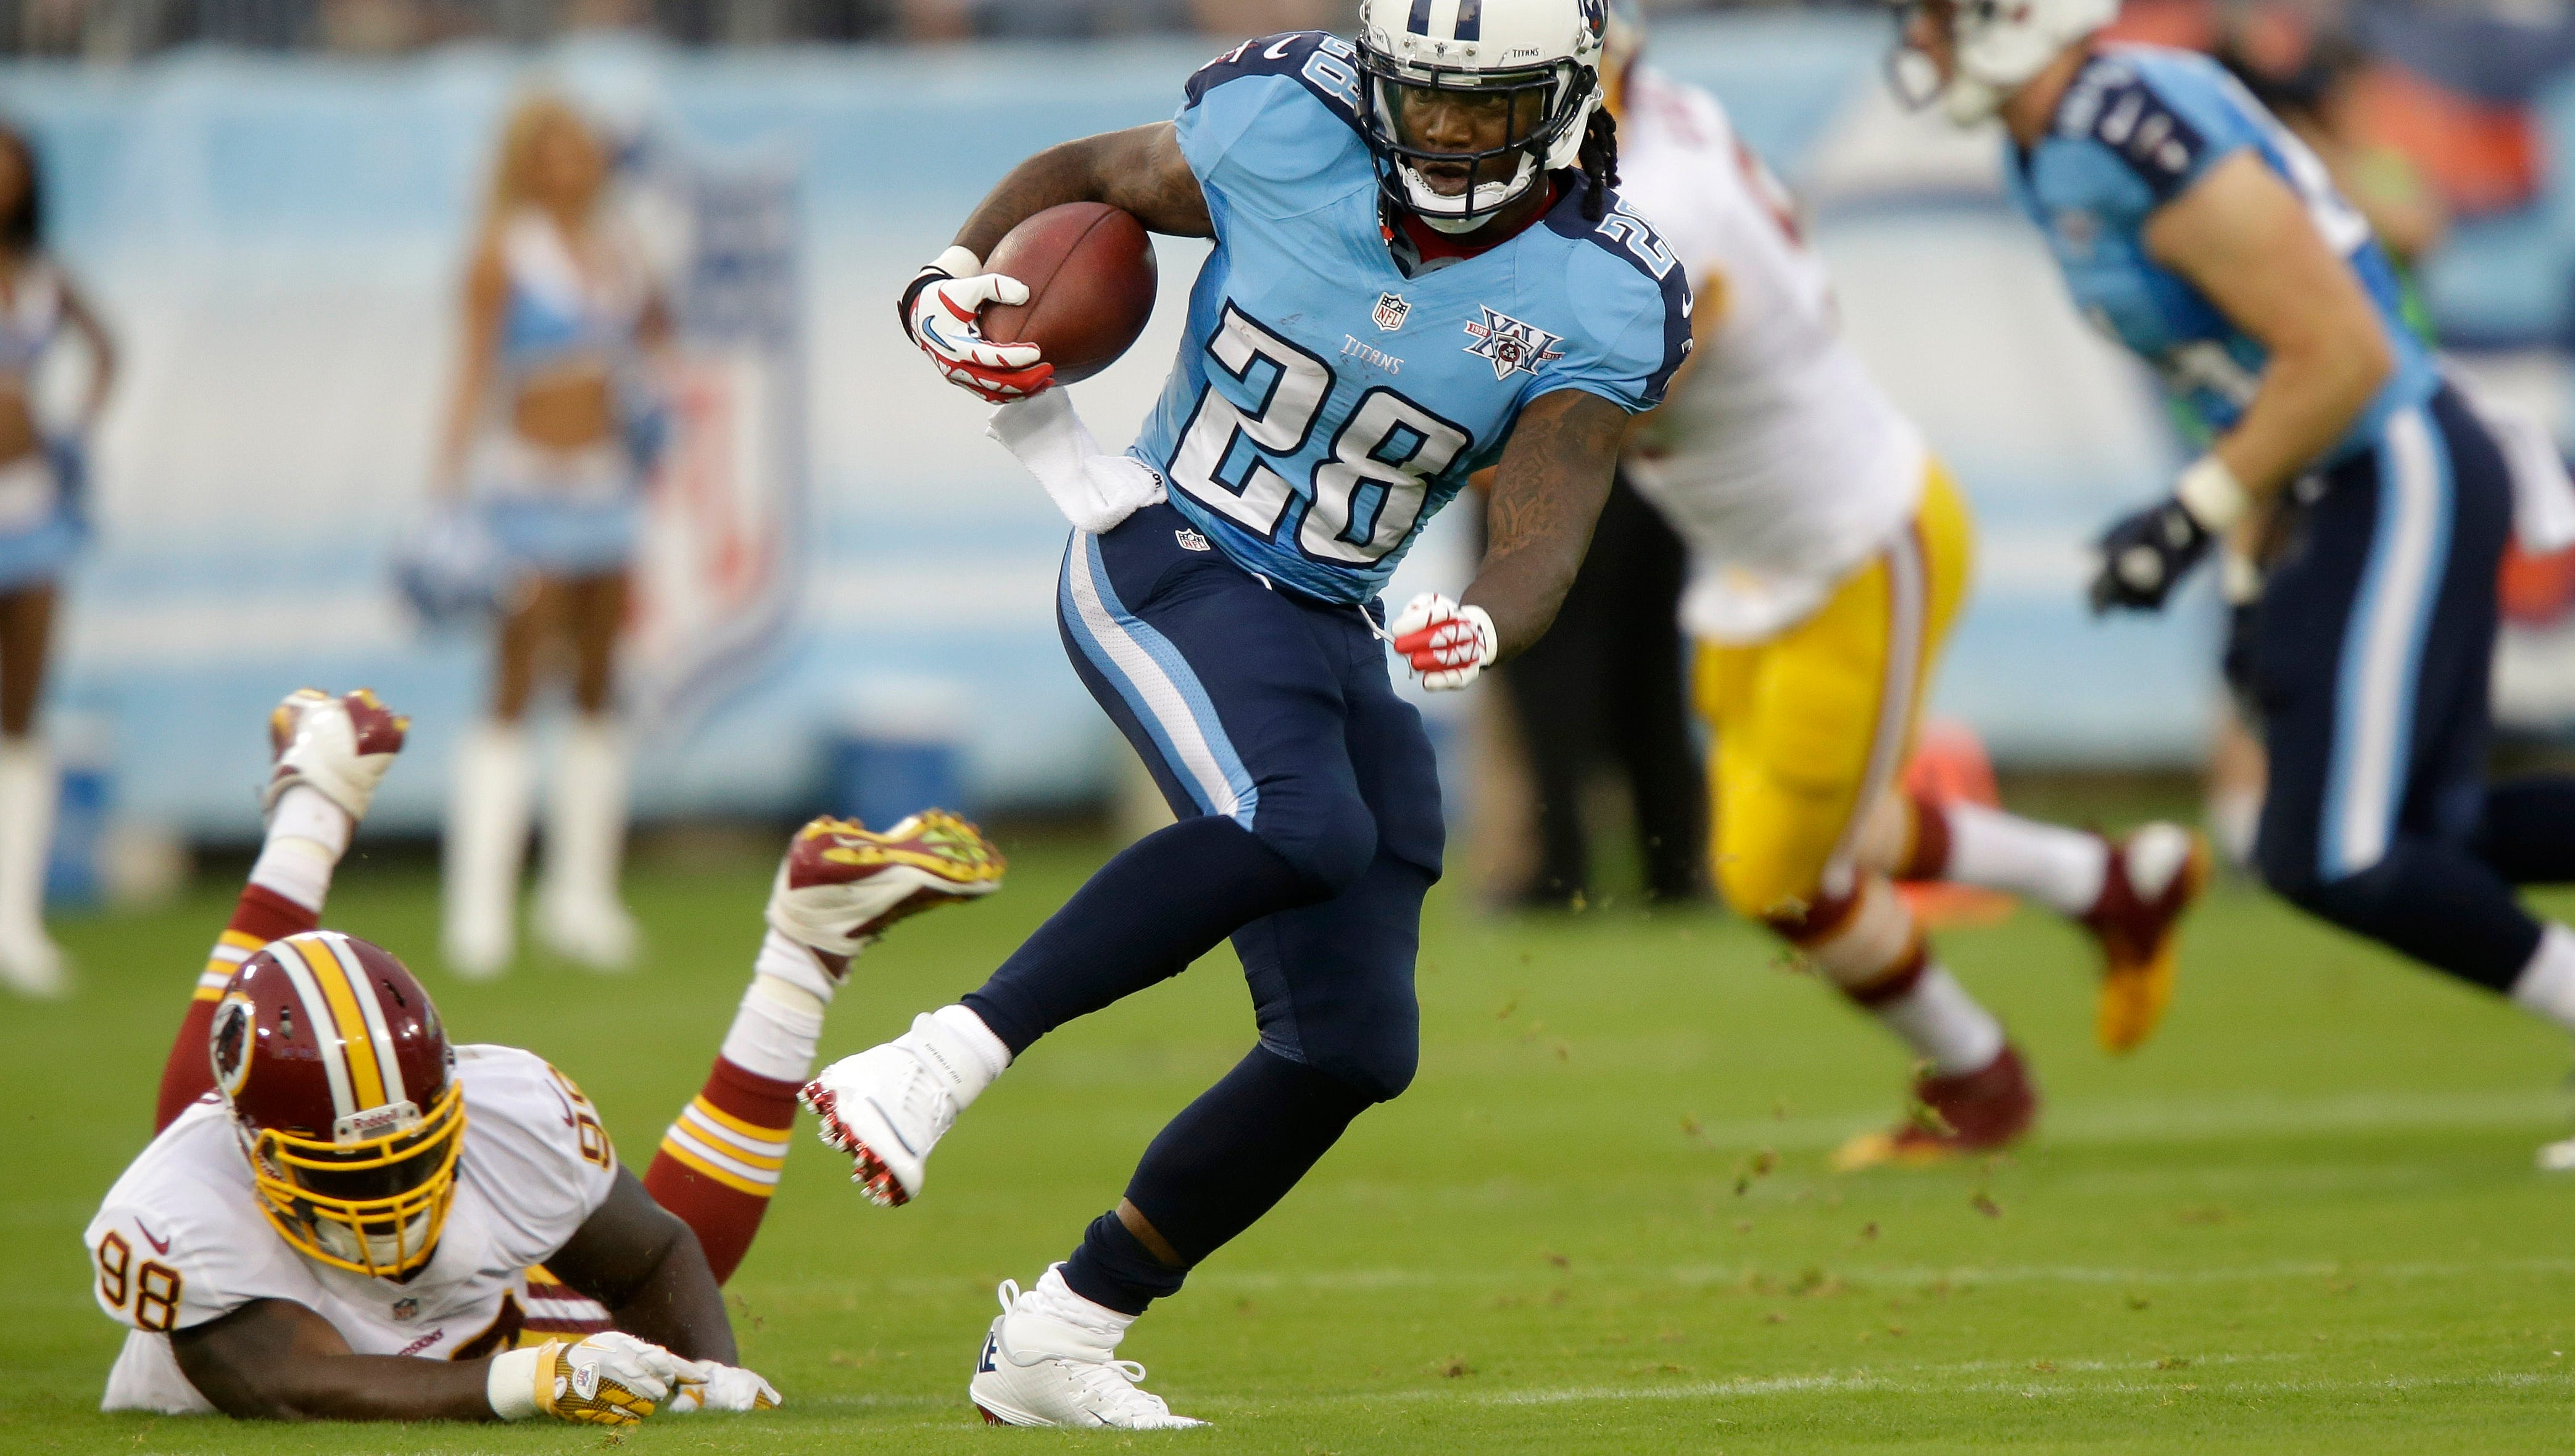 Tennessee Titans running back Chris Johnson (28) gets past Washington Redskins linebacker Brian Orakpo (98) while running 58 yards for a touchdown in the first quarter.